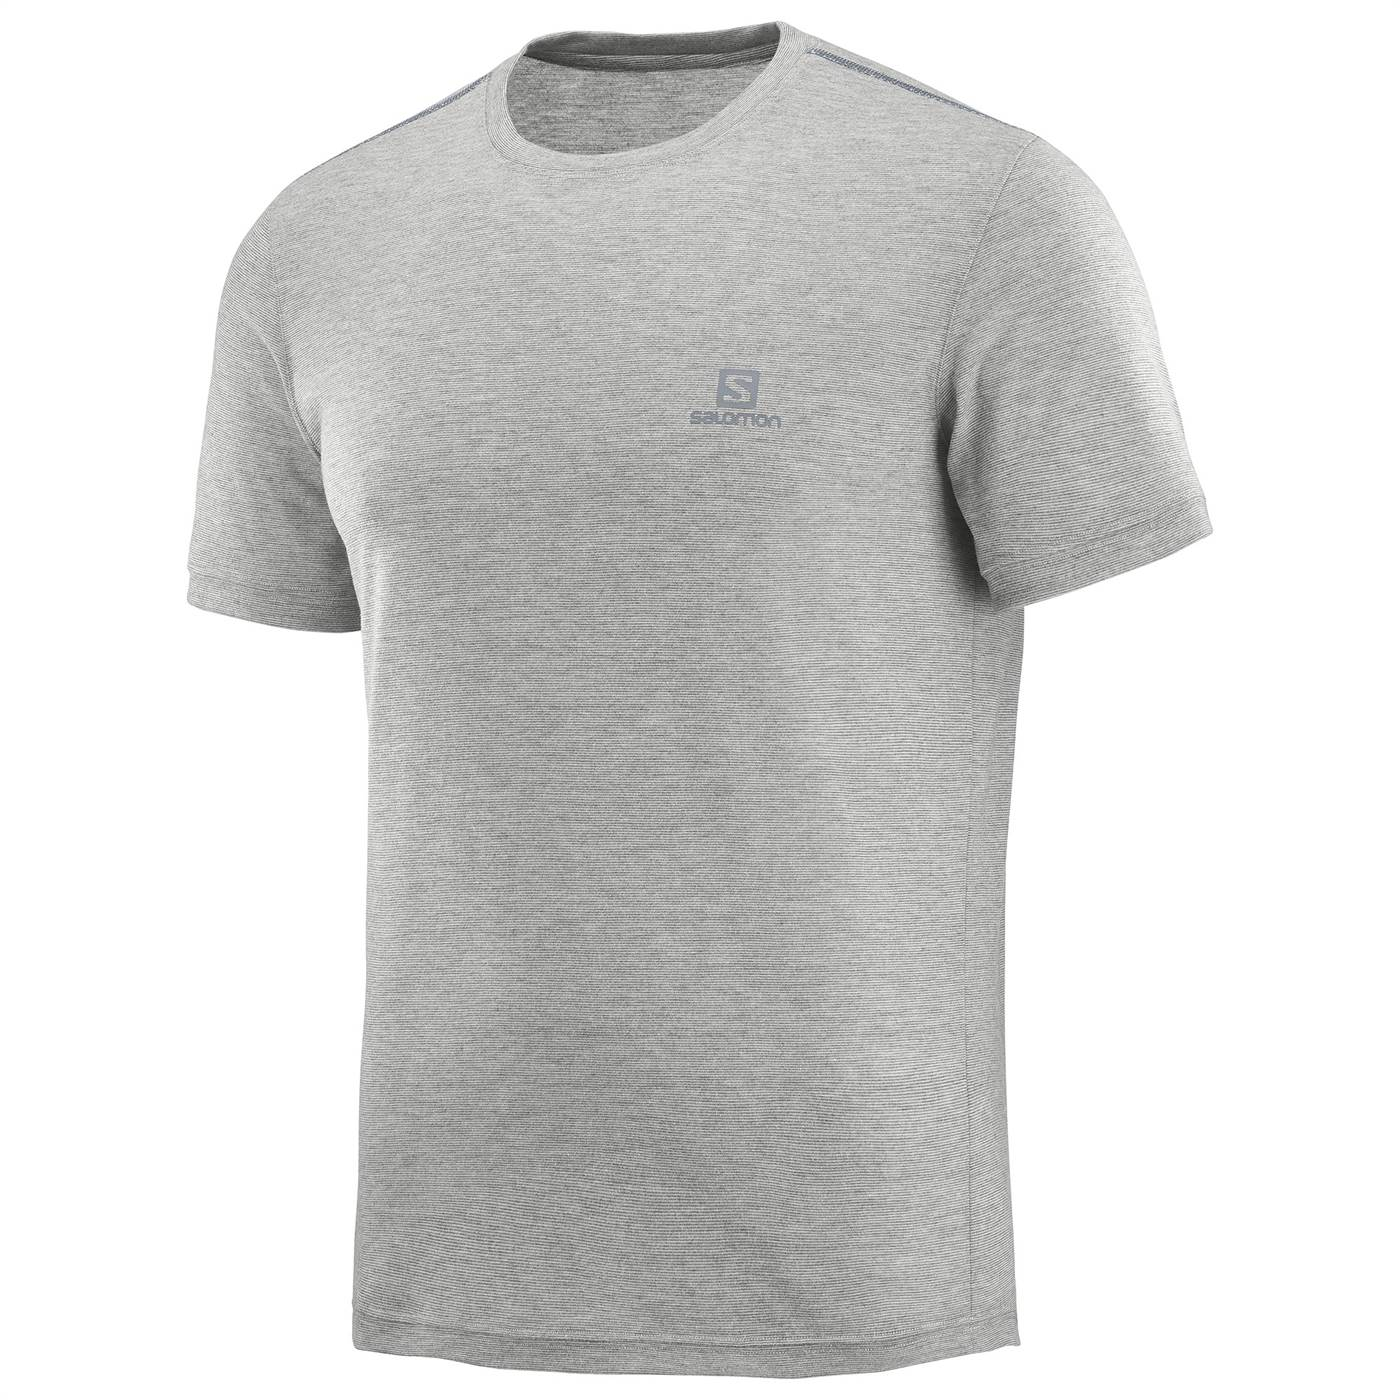 Explore Tee Short Sleeve Light Grey - Men's